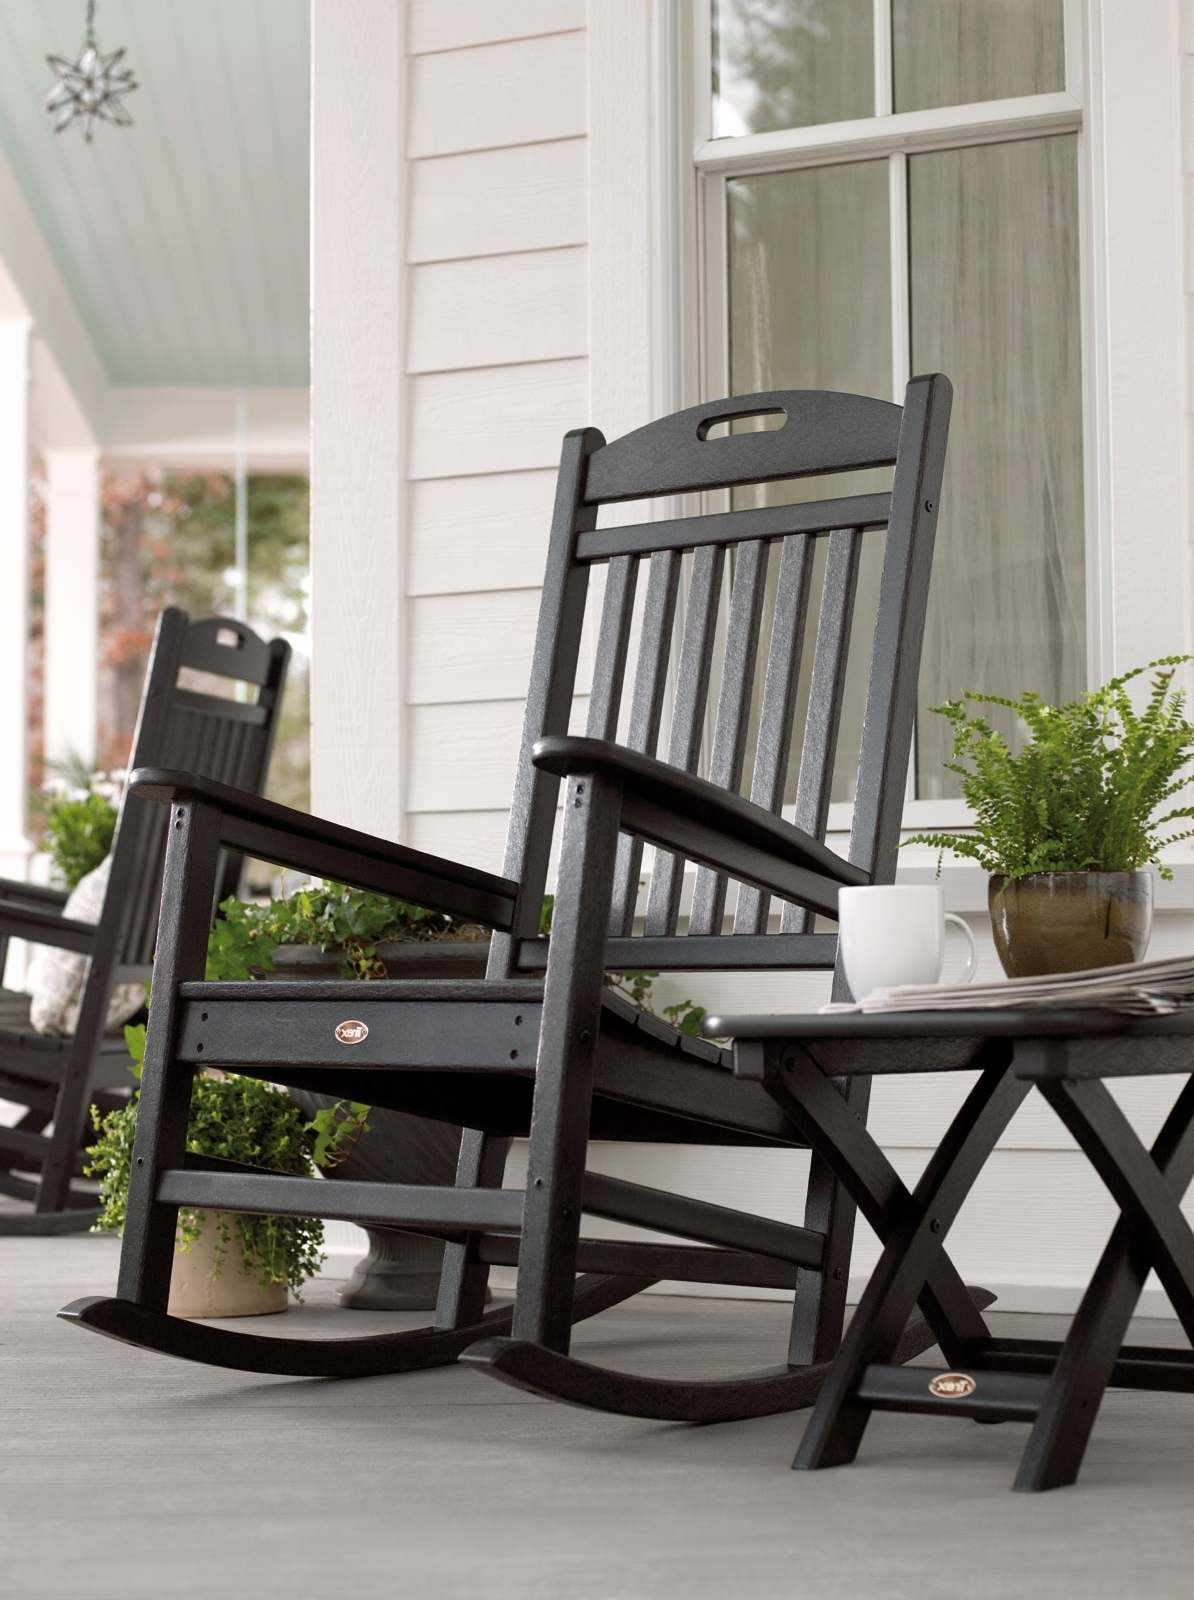 Outdoor Rocking Chairs With Cushions Inside Most Popular Patio & Garden : Outdoor Rocking Chair Seat Cushions Outdoor Rocking (View 13 of 15)